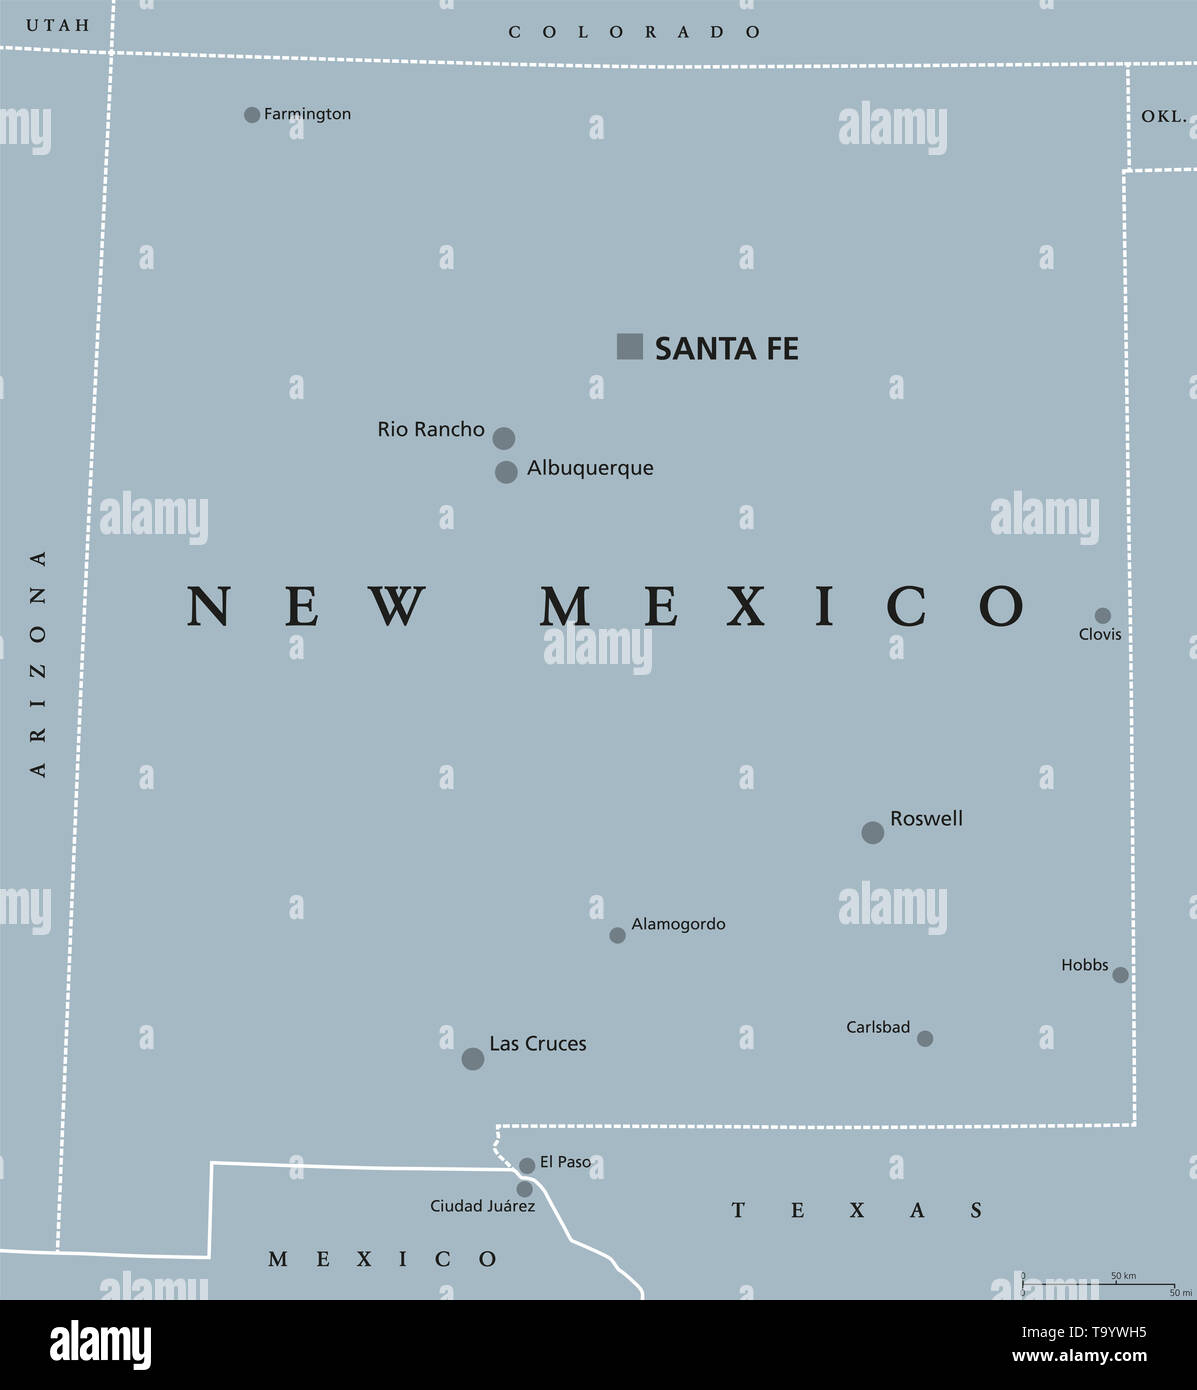 New Mexico, political map, with capital Santa Fe, the ... on atlanta map usa, aspen map usa, tacoma map usa, los angeles map usa, chicago map usa, san antonio map usa, st louis map usa, seattle map usa, pittsburgh map usa, richmond map usa, full map of usa, san francisco map usa, washington map usa, new york map usa, detroit map usa, boston map usa, philadelphia map usa, denver map usa, charleston map usa, wilmington map usa,